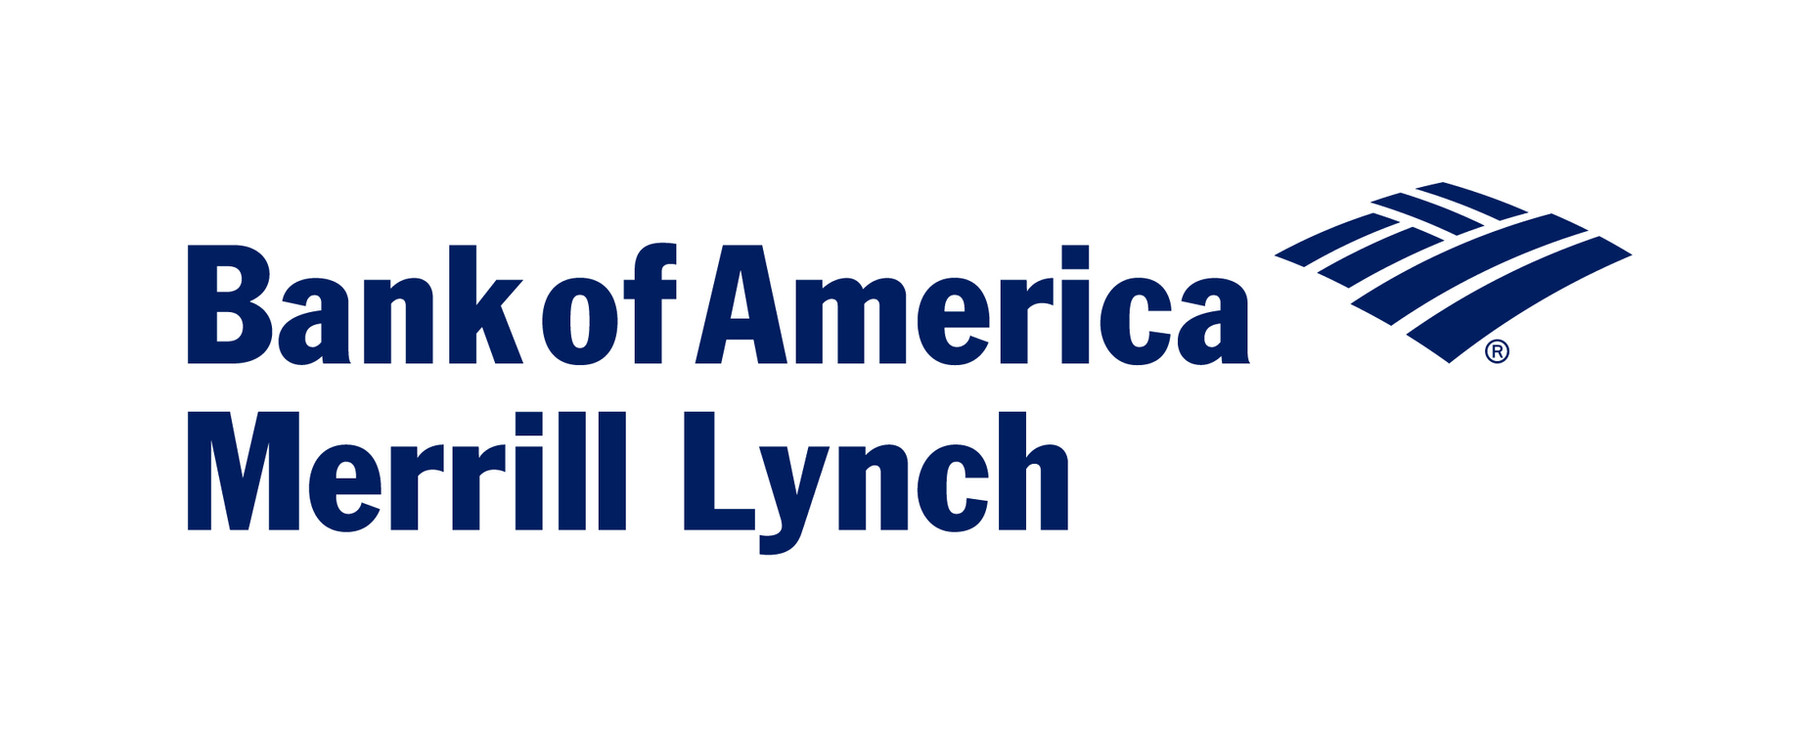 Bank_of_America_Merrill_Lynch_RGB_300.jp